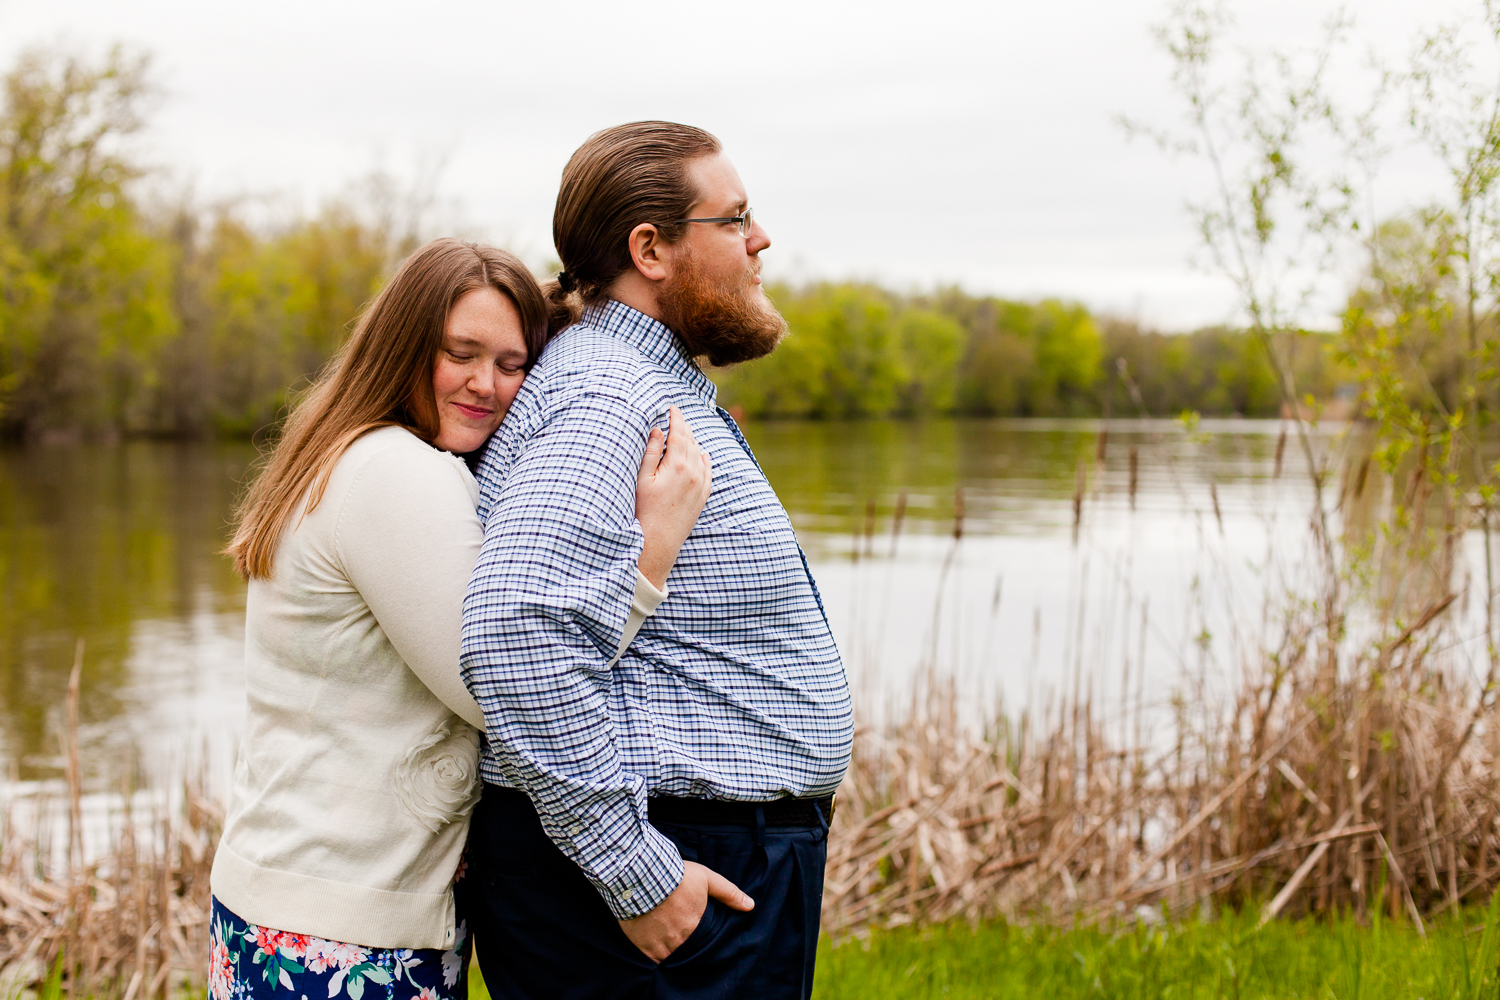 A woman rests against a man at Onondaga Lake Park in Syracuse NY during a spring engagement shoot.